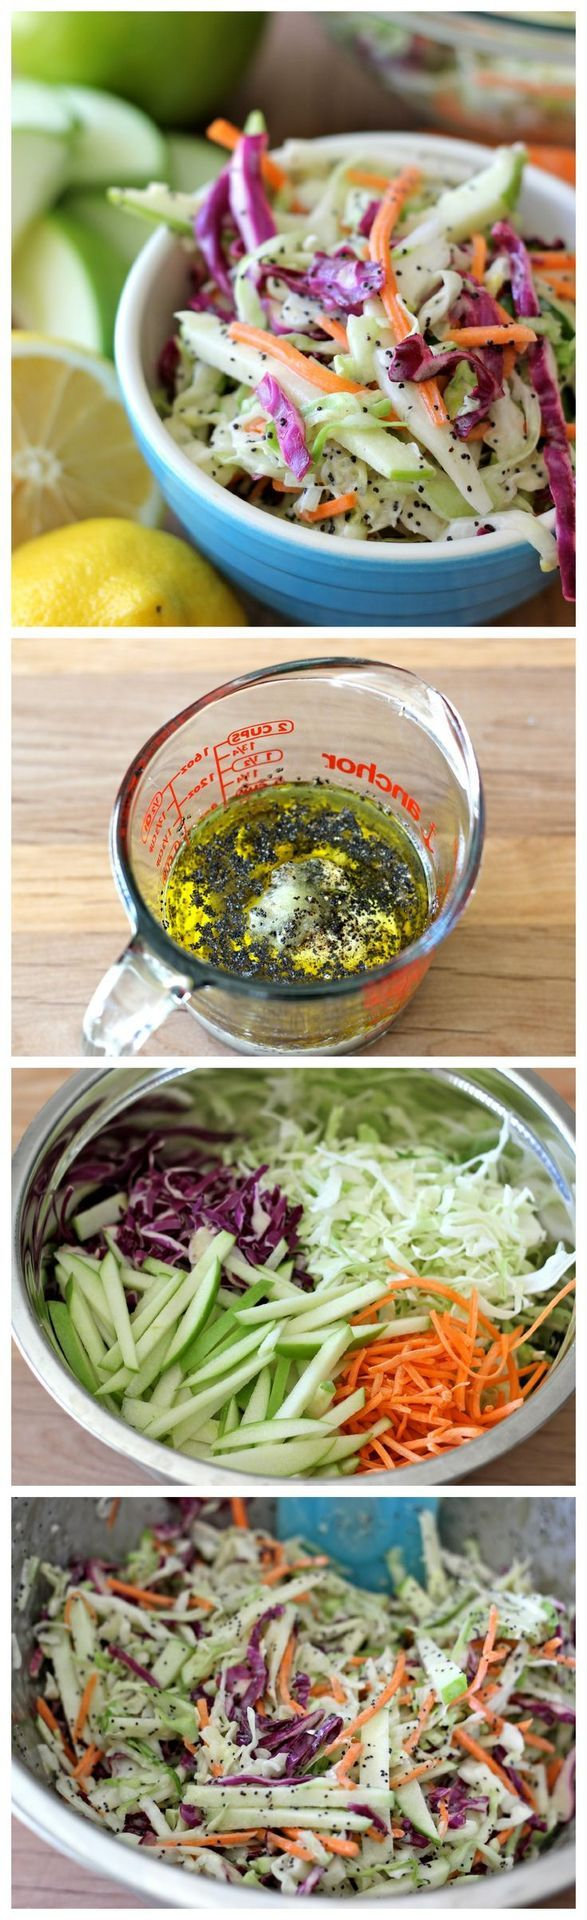 Apple and Poppy Seed Coleslaw - Wonderfully tangy and refreshing andthe perfect side dish to any meal!